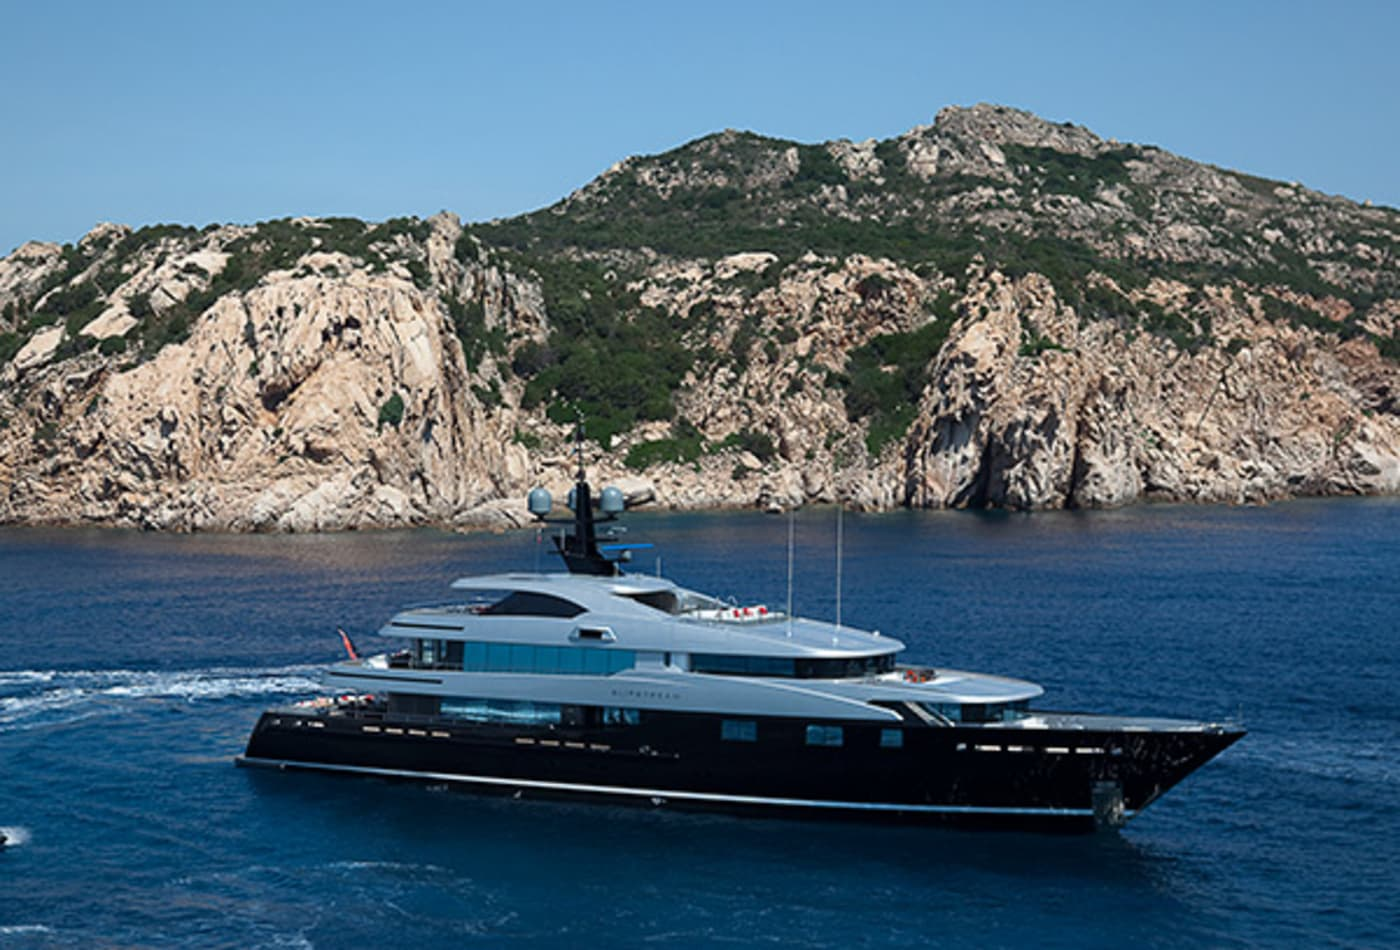 Yachts-at-a-discount-slipstream-exterior.jpg